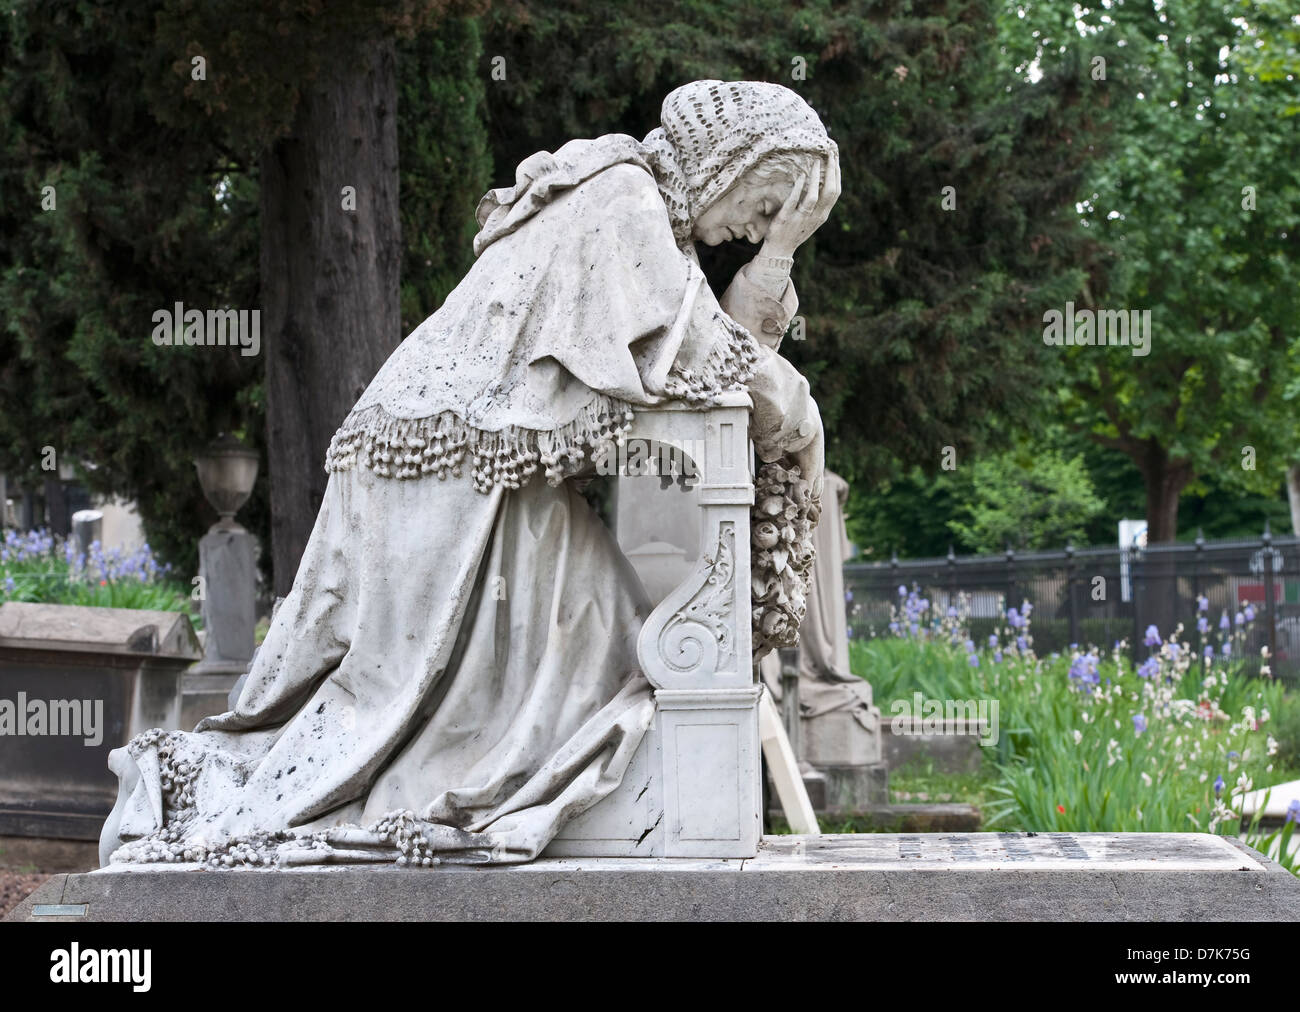 The English Cemetery, Florence, Italy. The grave of Arnold Landor is marked by a statue of his grieving mother - Stock Image